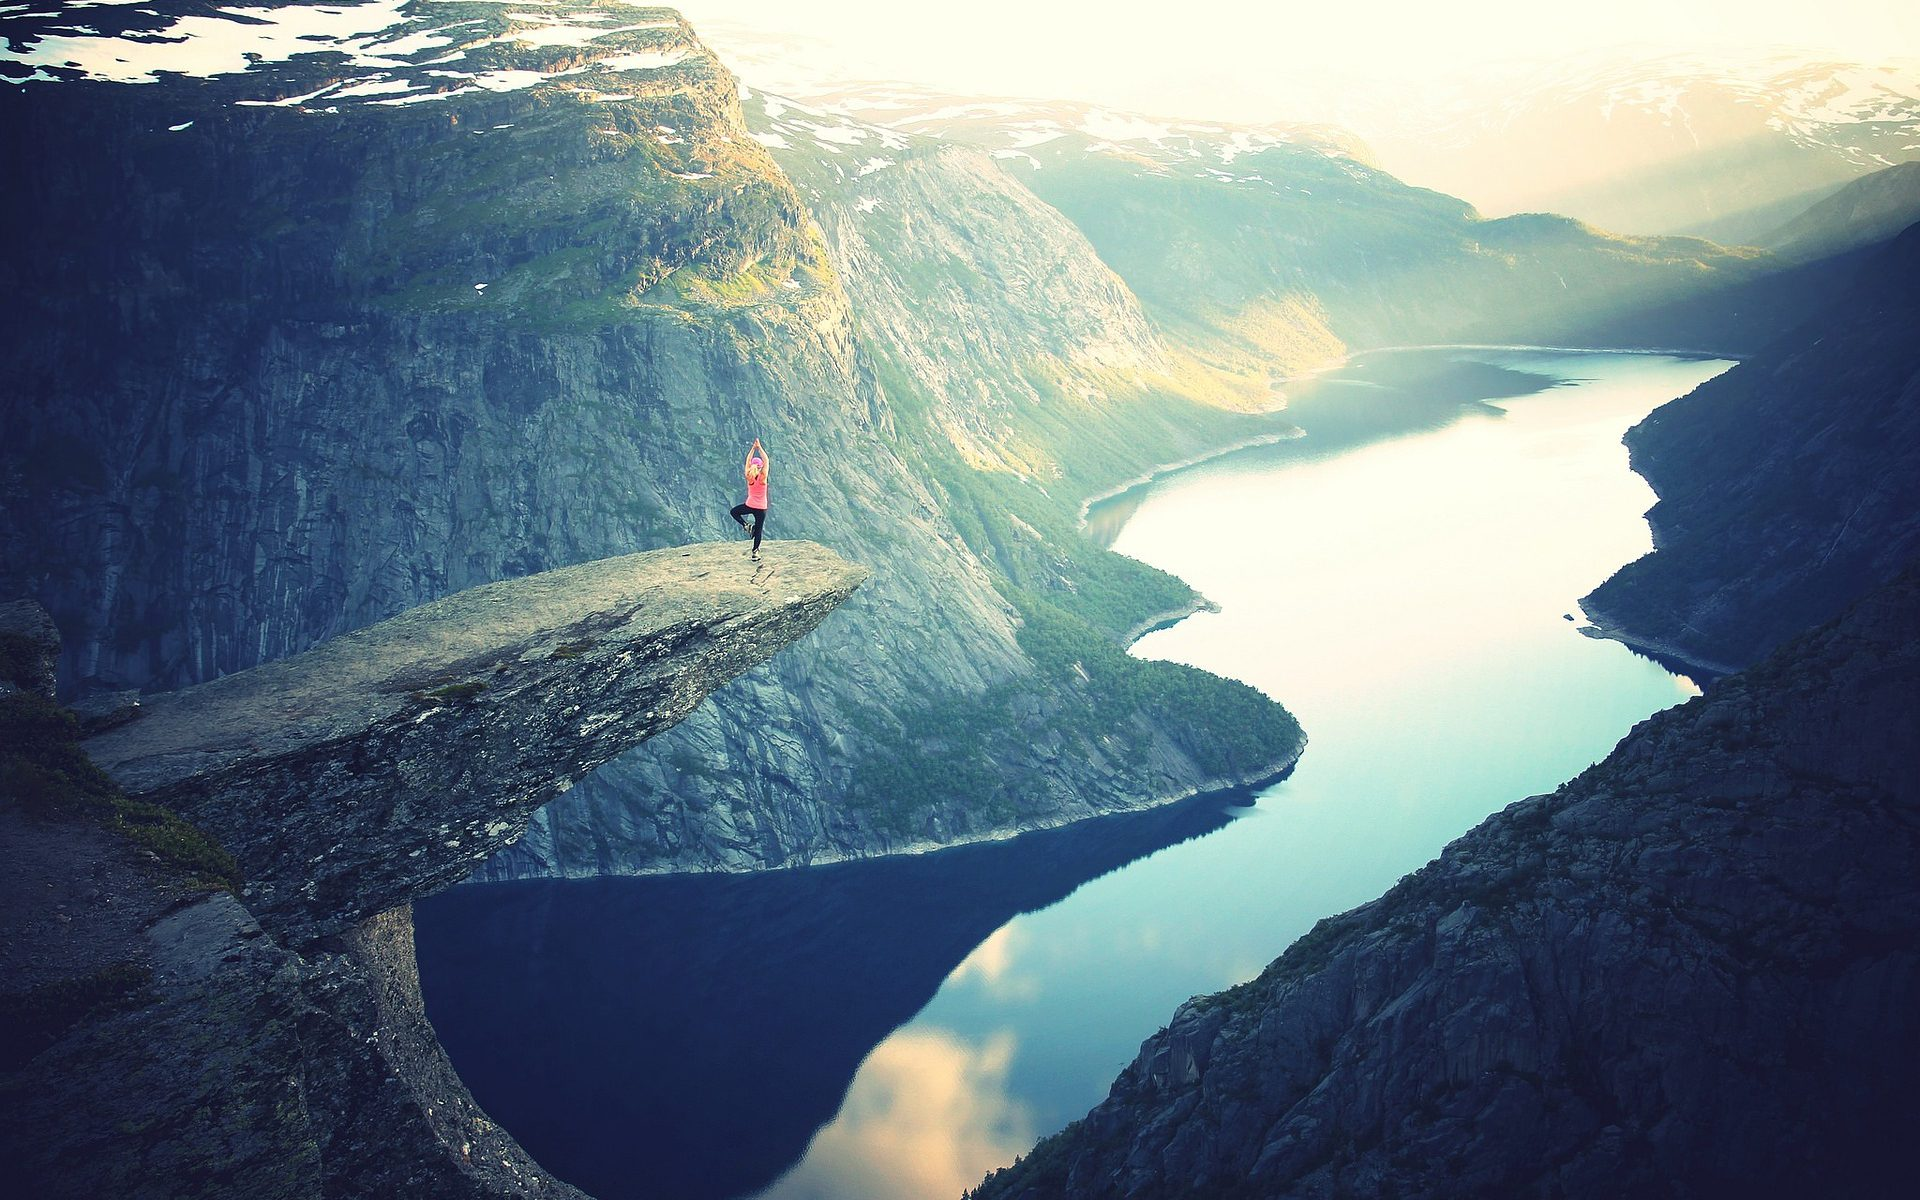 Man doing yoga on edge of rock in beautiful scenery